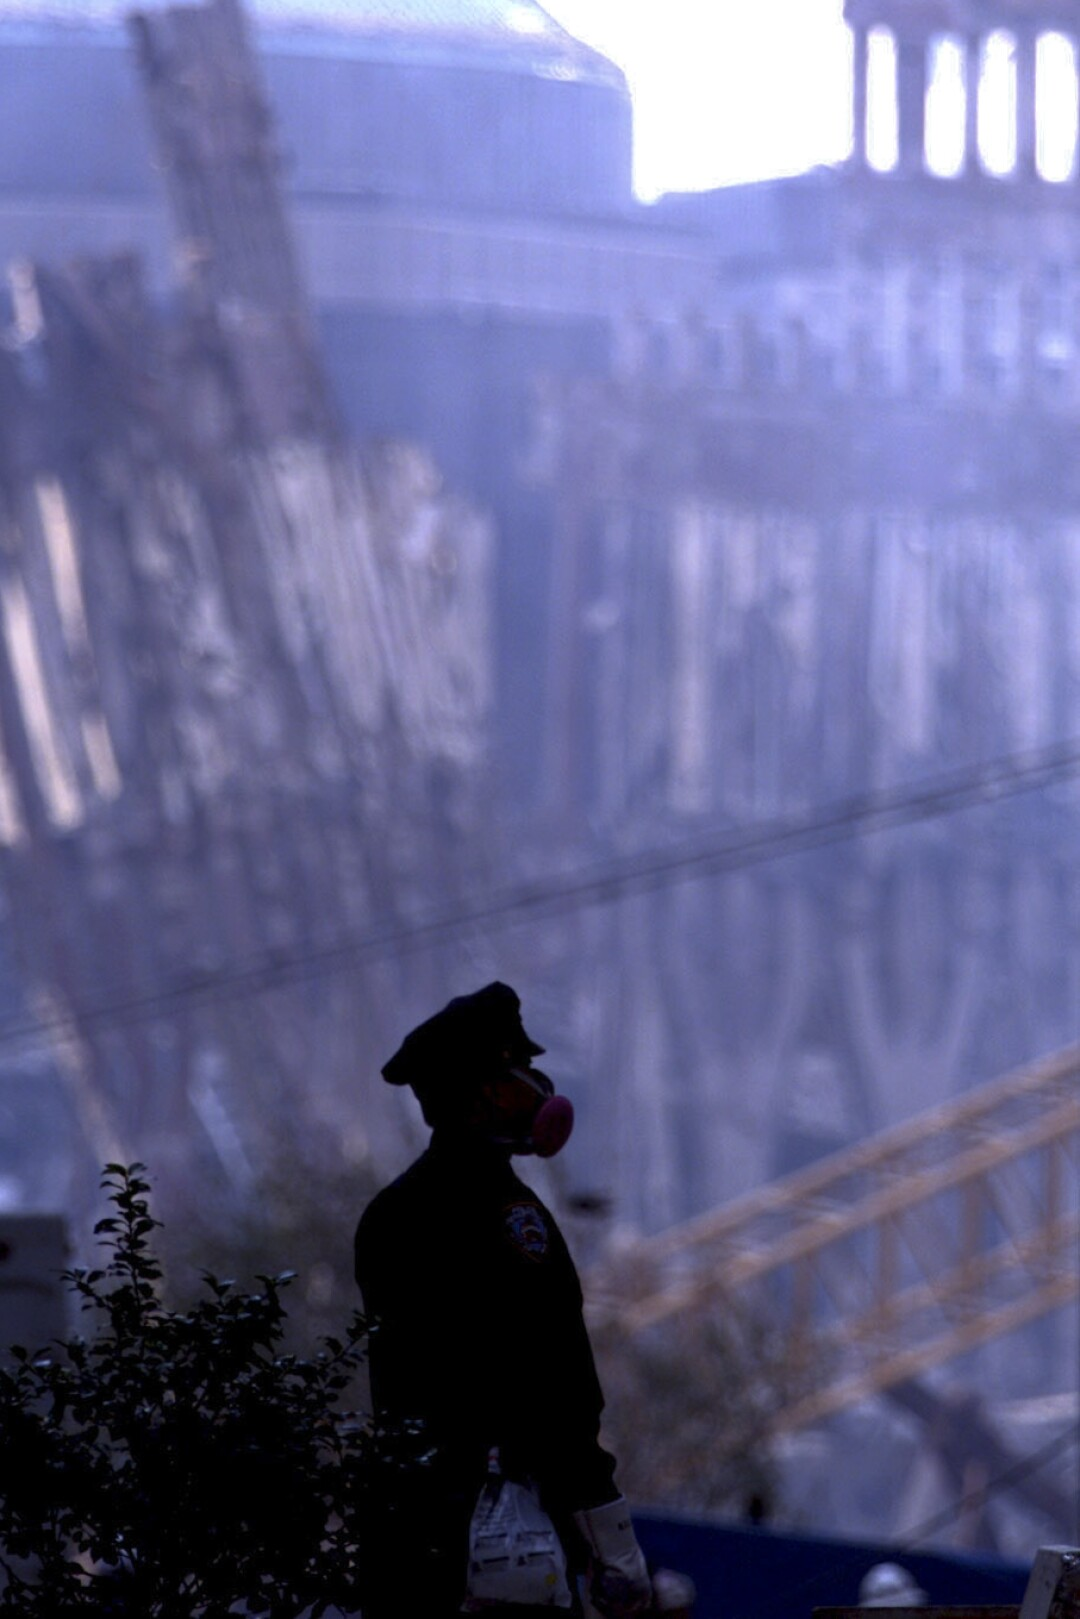 A policeman wearing a gas mask is silhouetted against the remains of a building